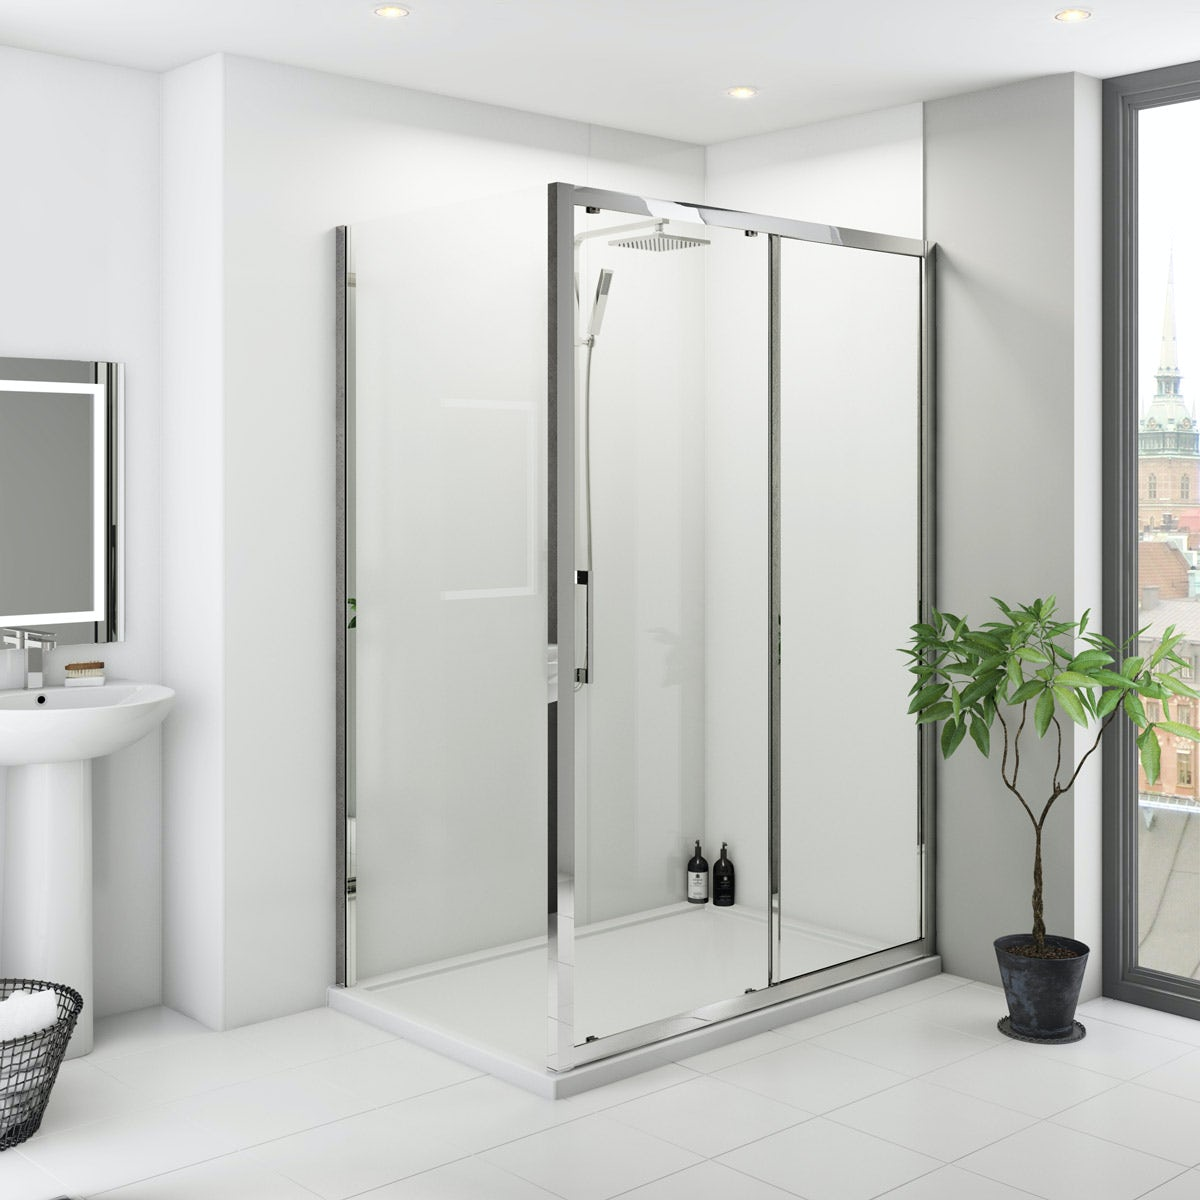 Multipanel Classic White Hydrolock shower wall panel